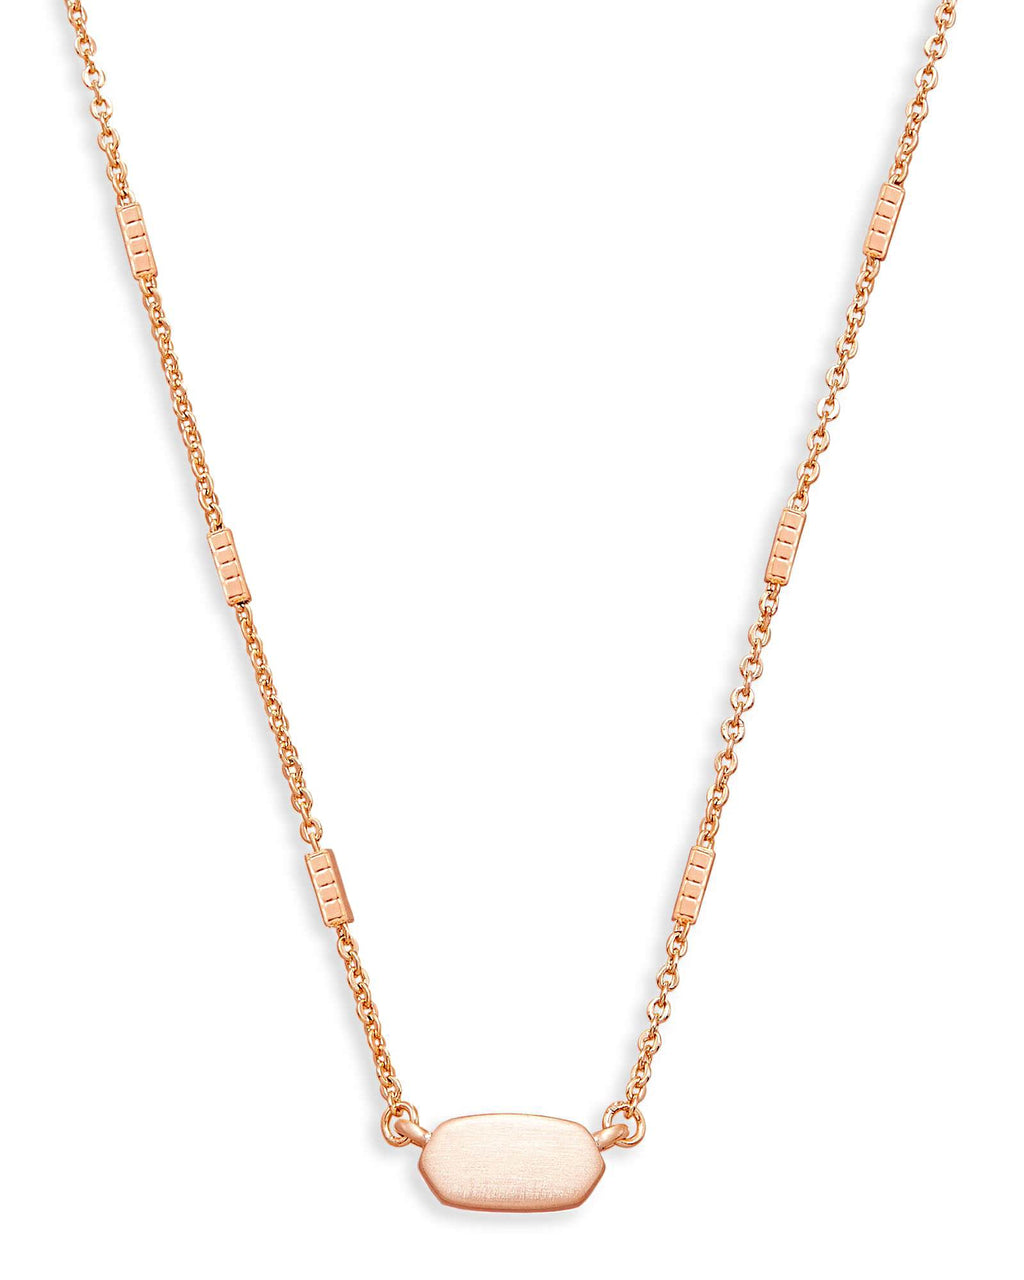 Kendra Scott Fern Necklace - Rosegold